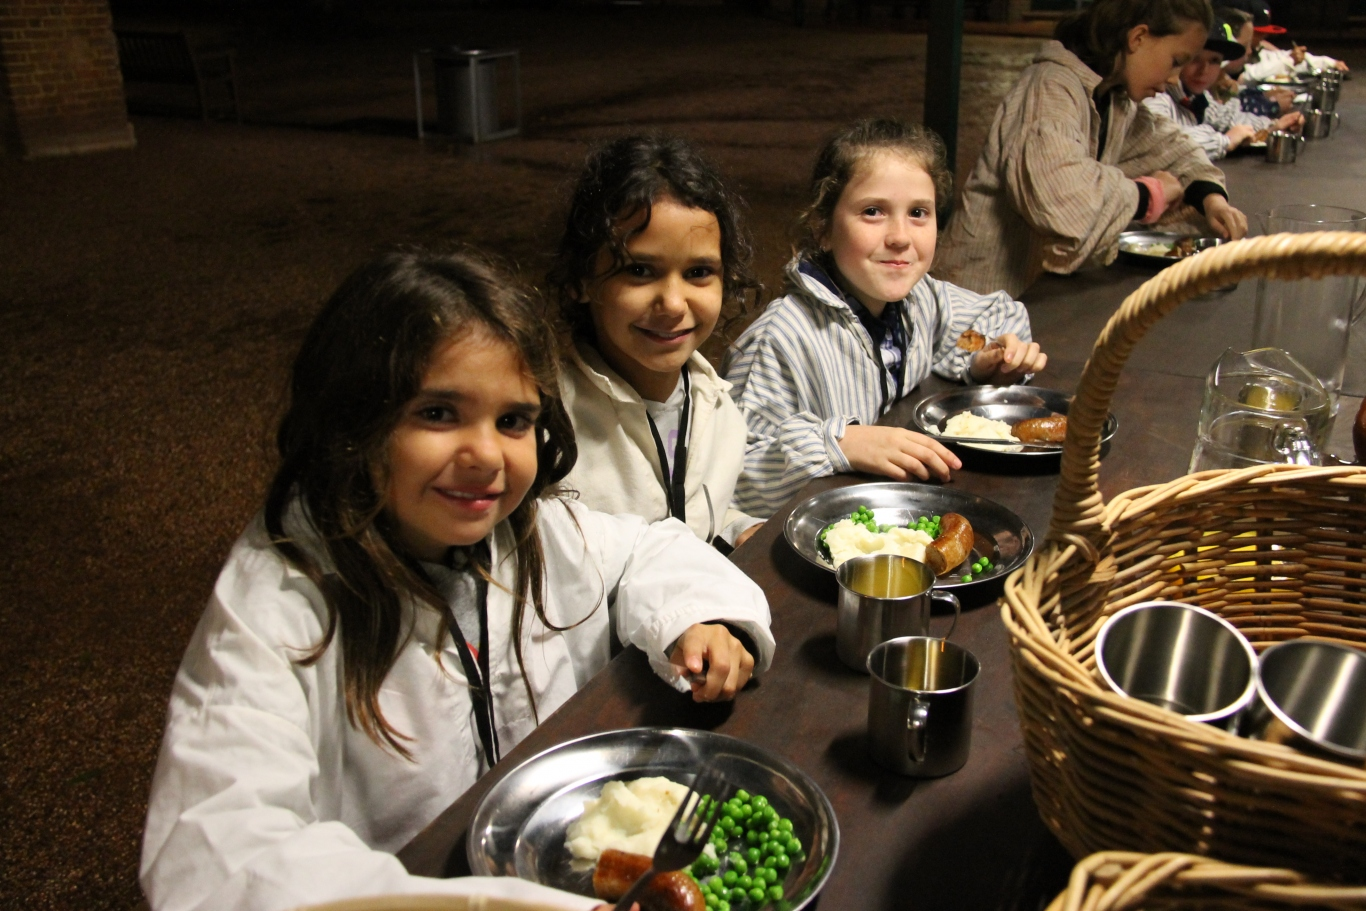 Children dressed in convict costume seated at long table with food and drink.